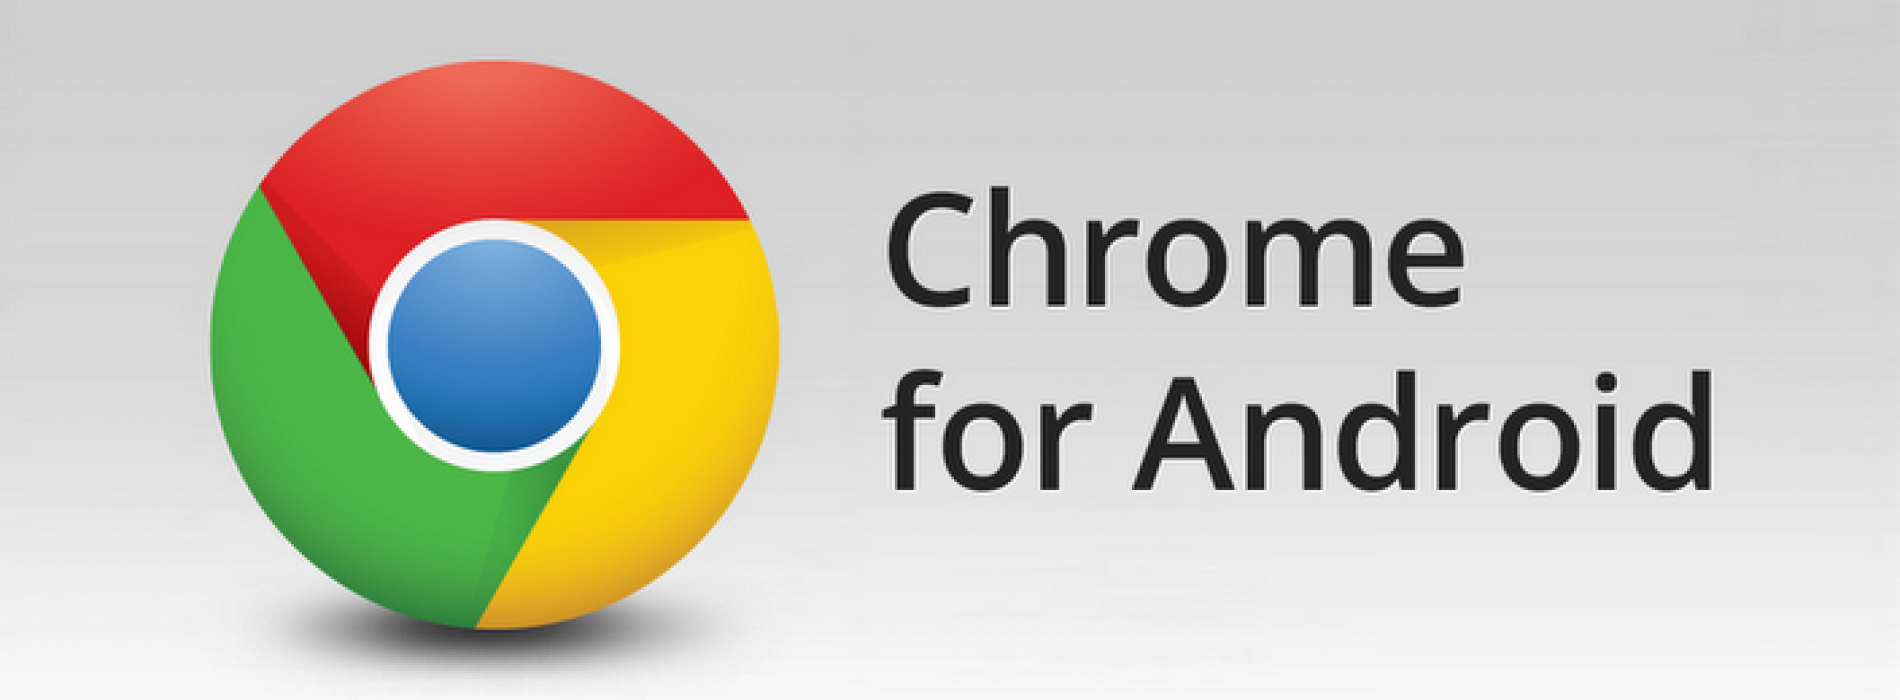 Chrome for Android gets first update since leaving beta